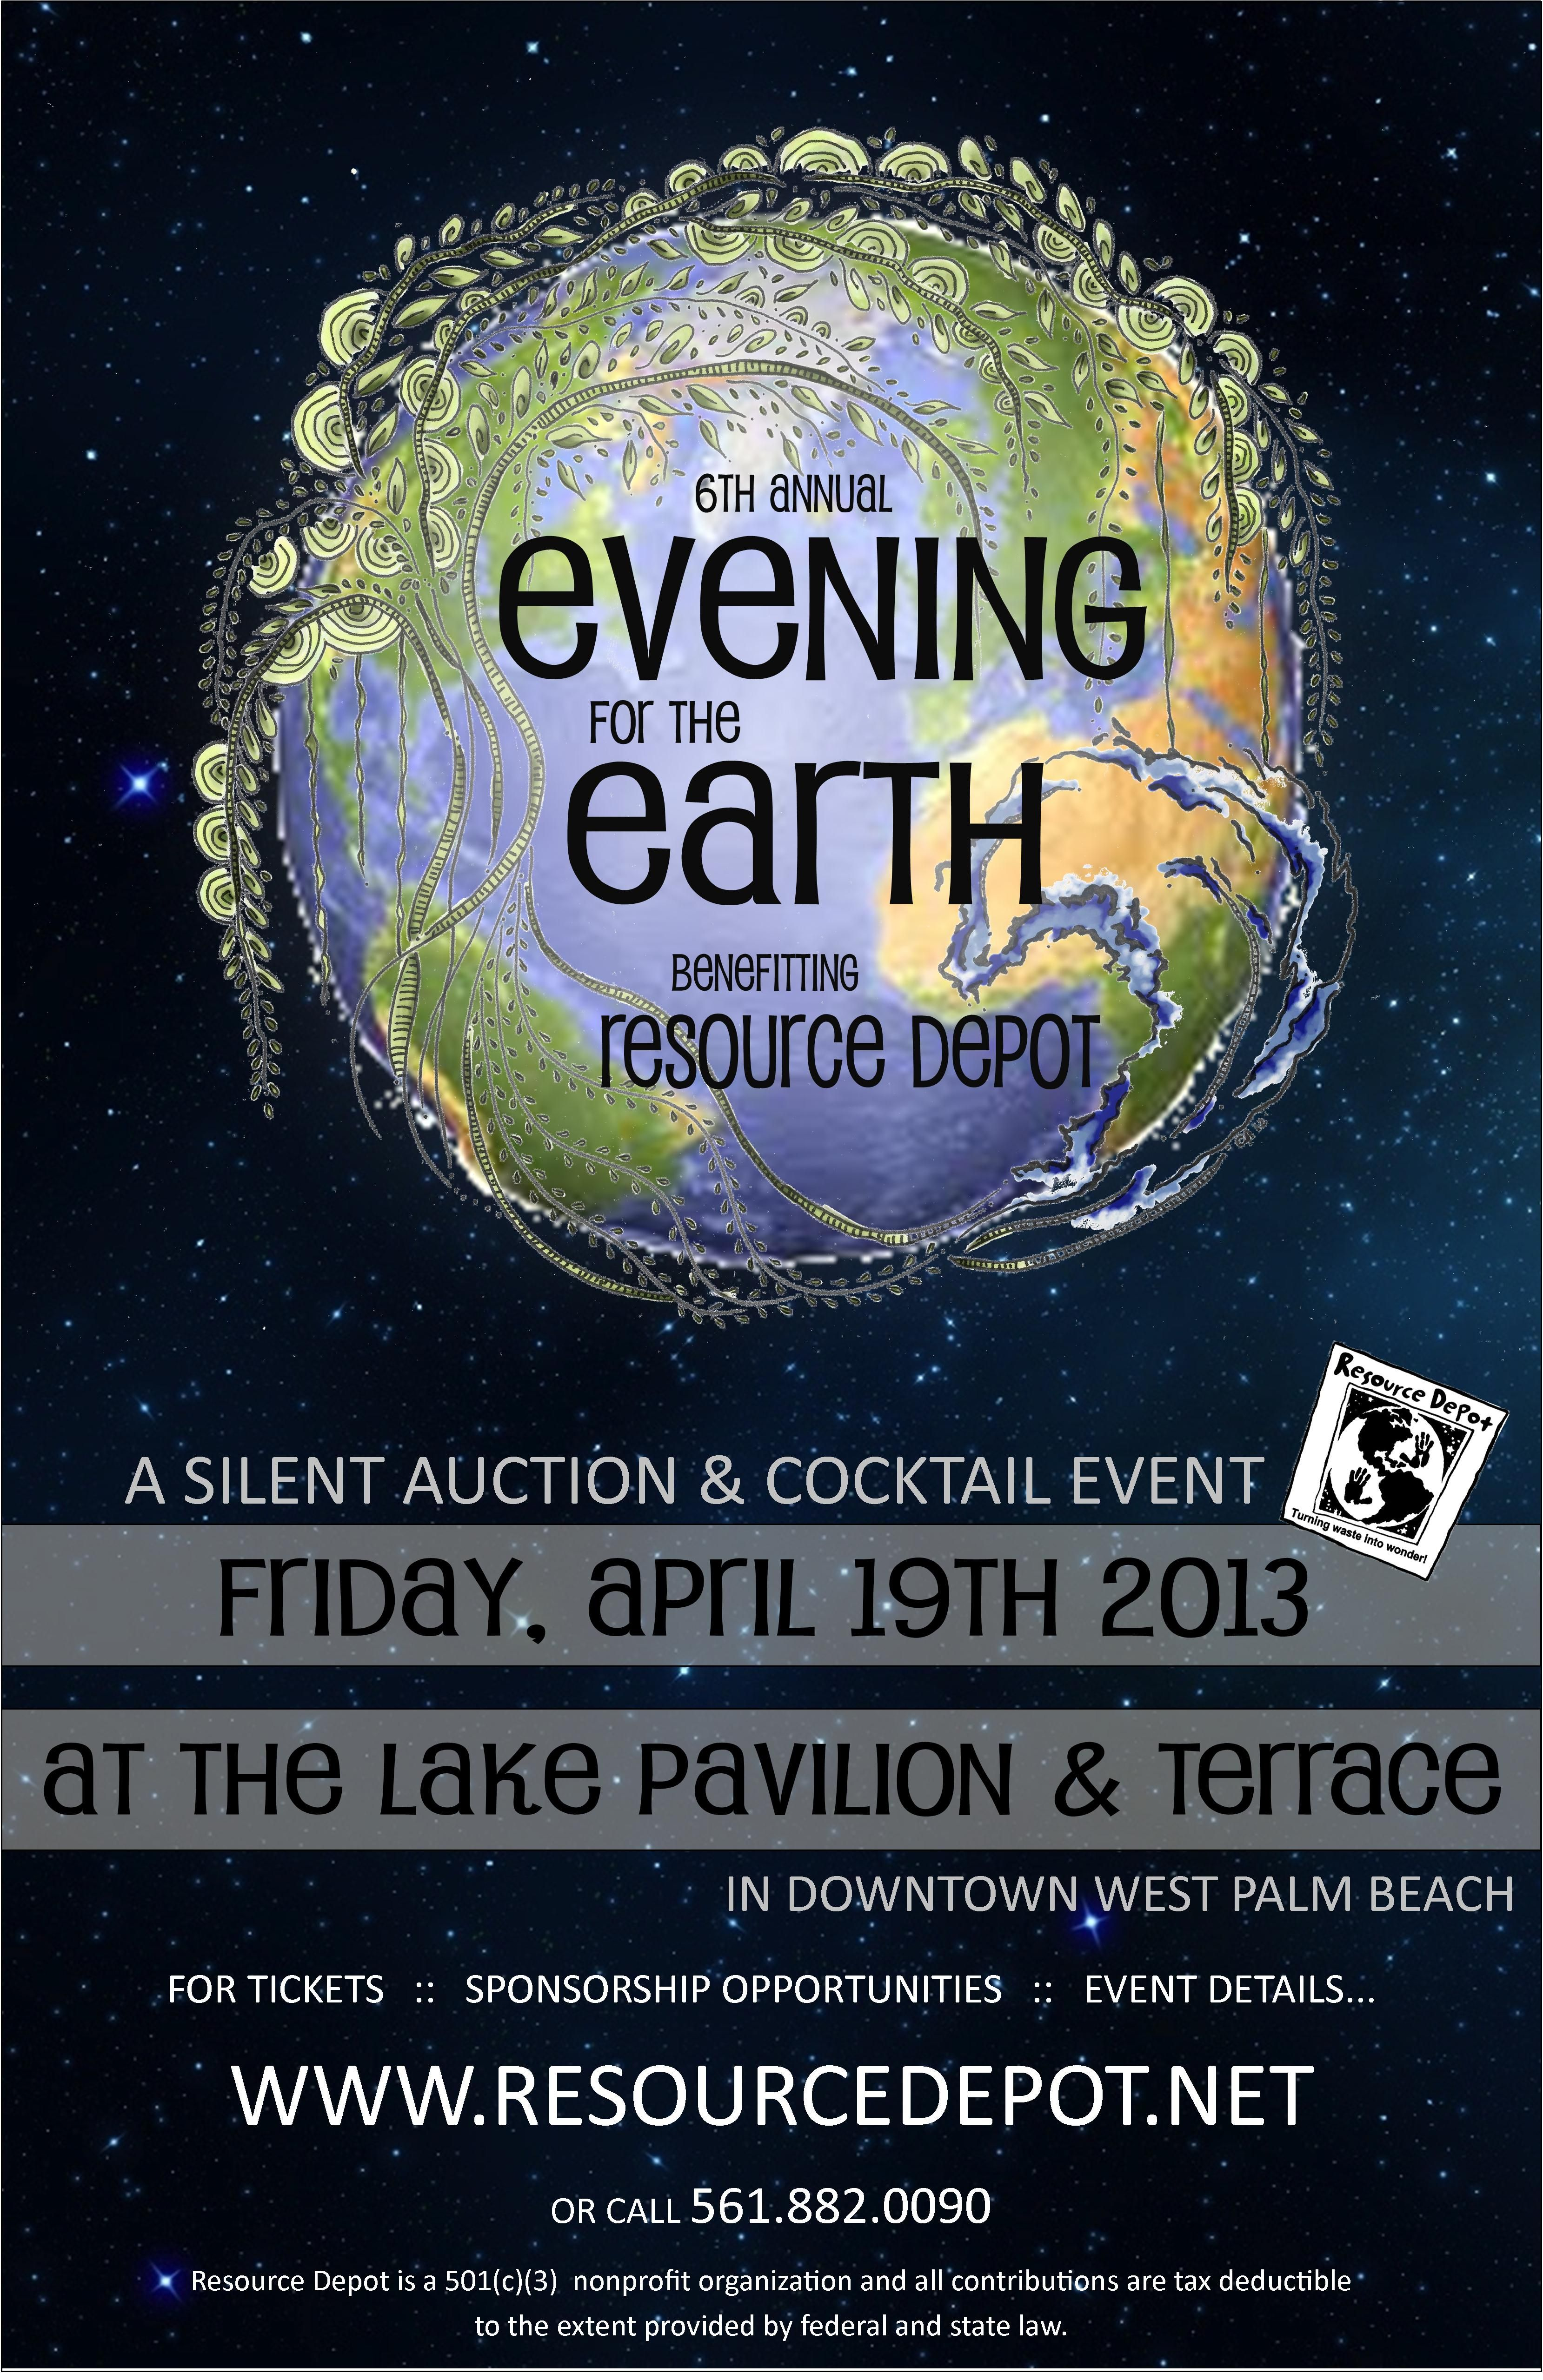 6th Annual Evening for the Earth :: 4.19.13 :: Learn more at www.resourcedepot.net